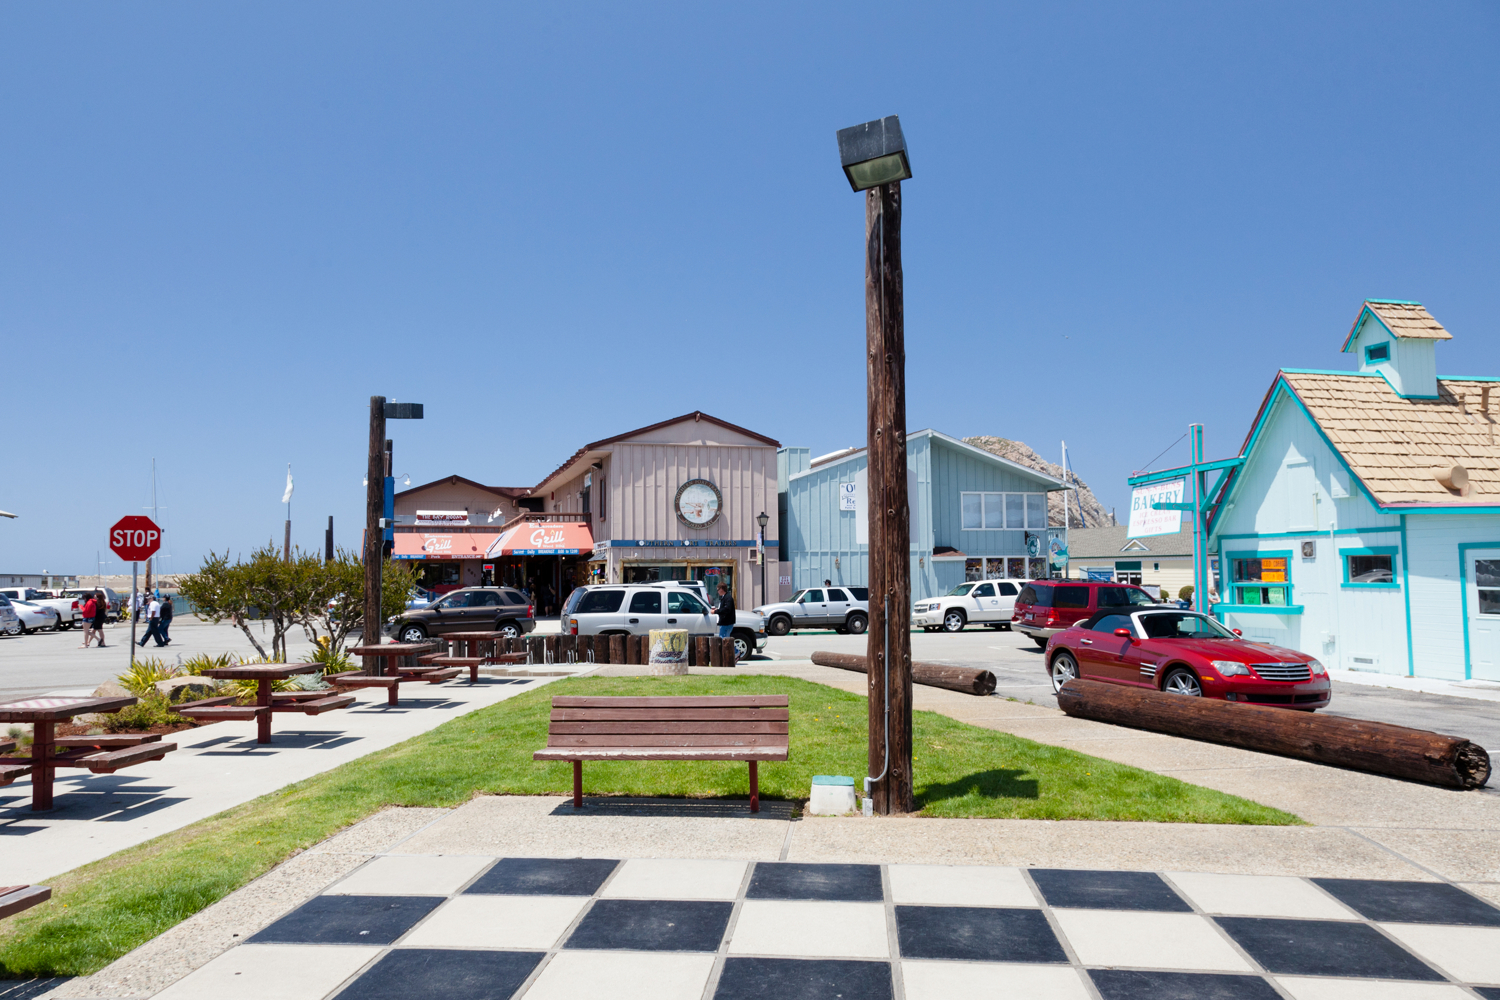 California-Morro-Bay-Coast-27138182.JPG?mtime=20180424154854#asset:101592